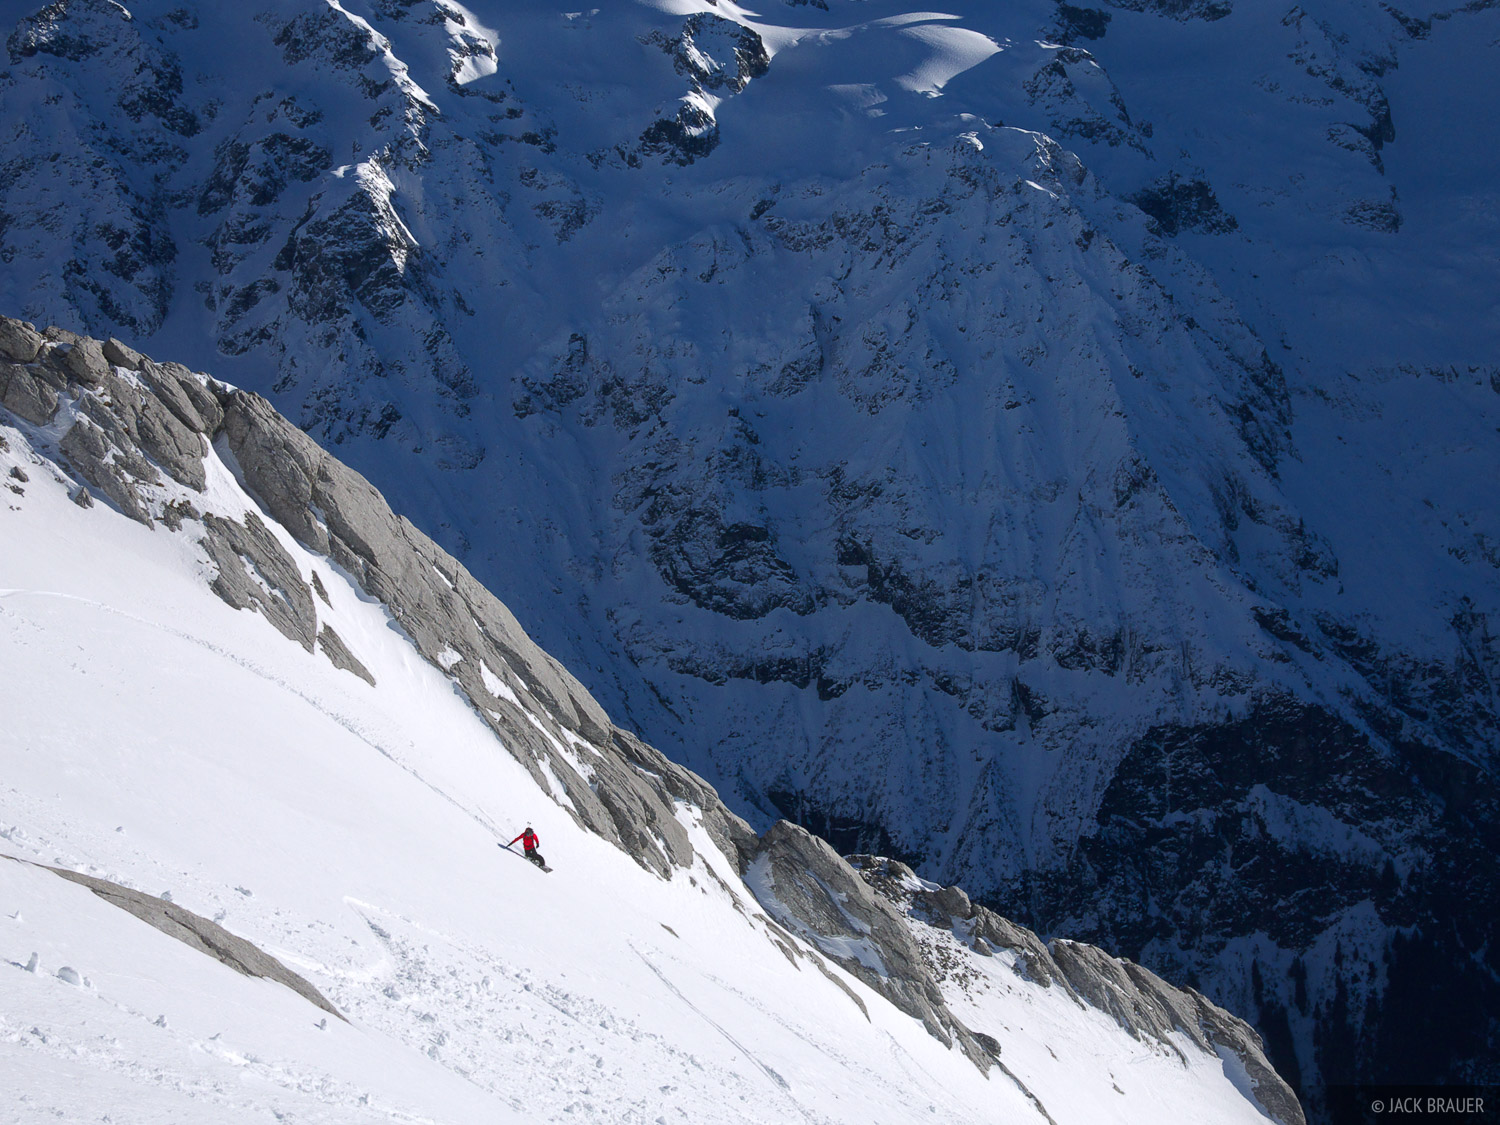 snowboarding, Wissberg, Engelberg, Switzerland, photo